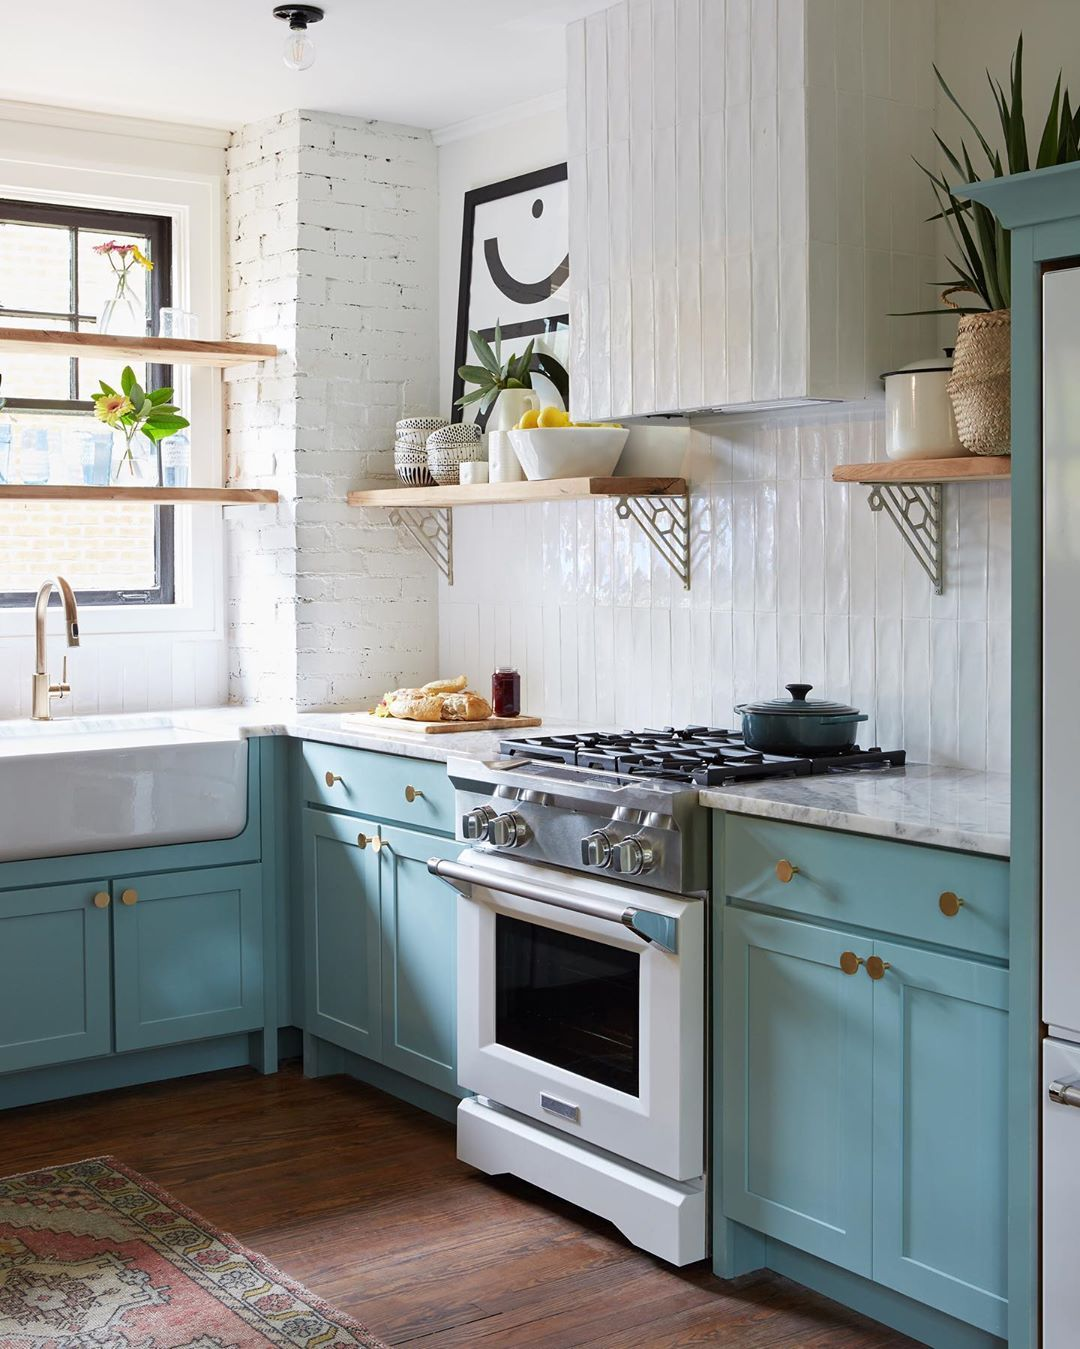 The vertical subway tile in this kitchen space is leaving us inspired! (